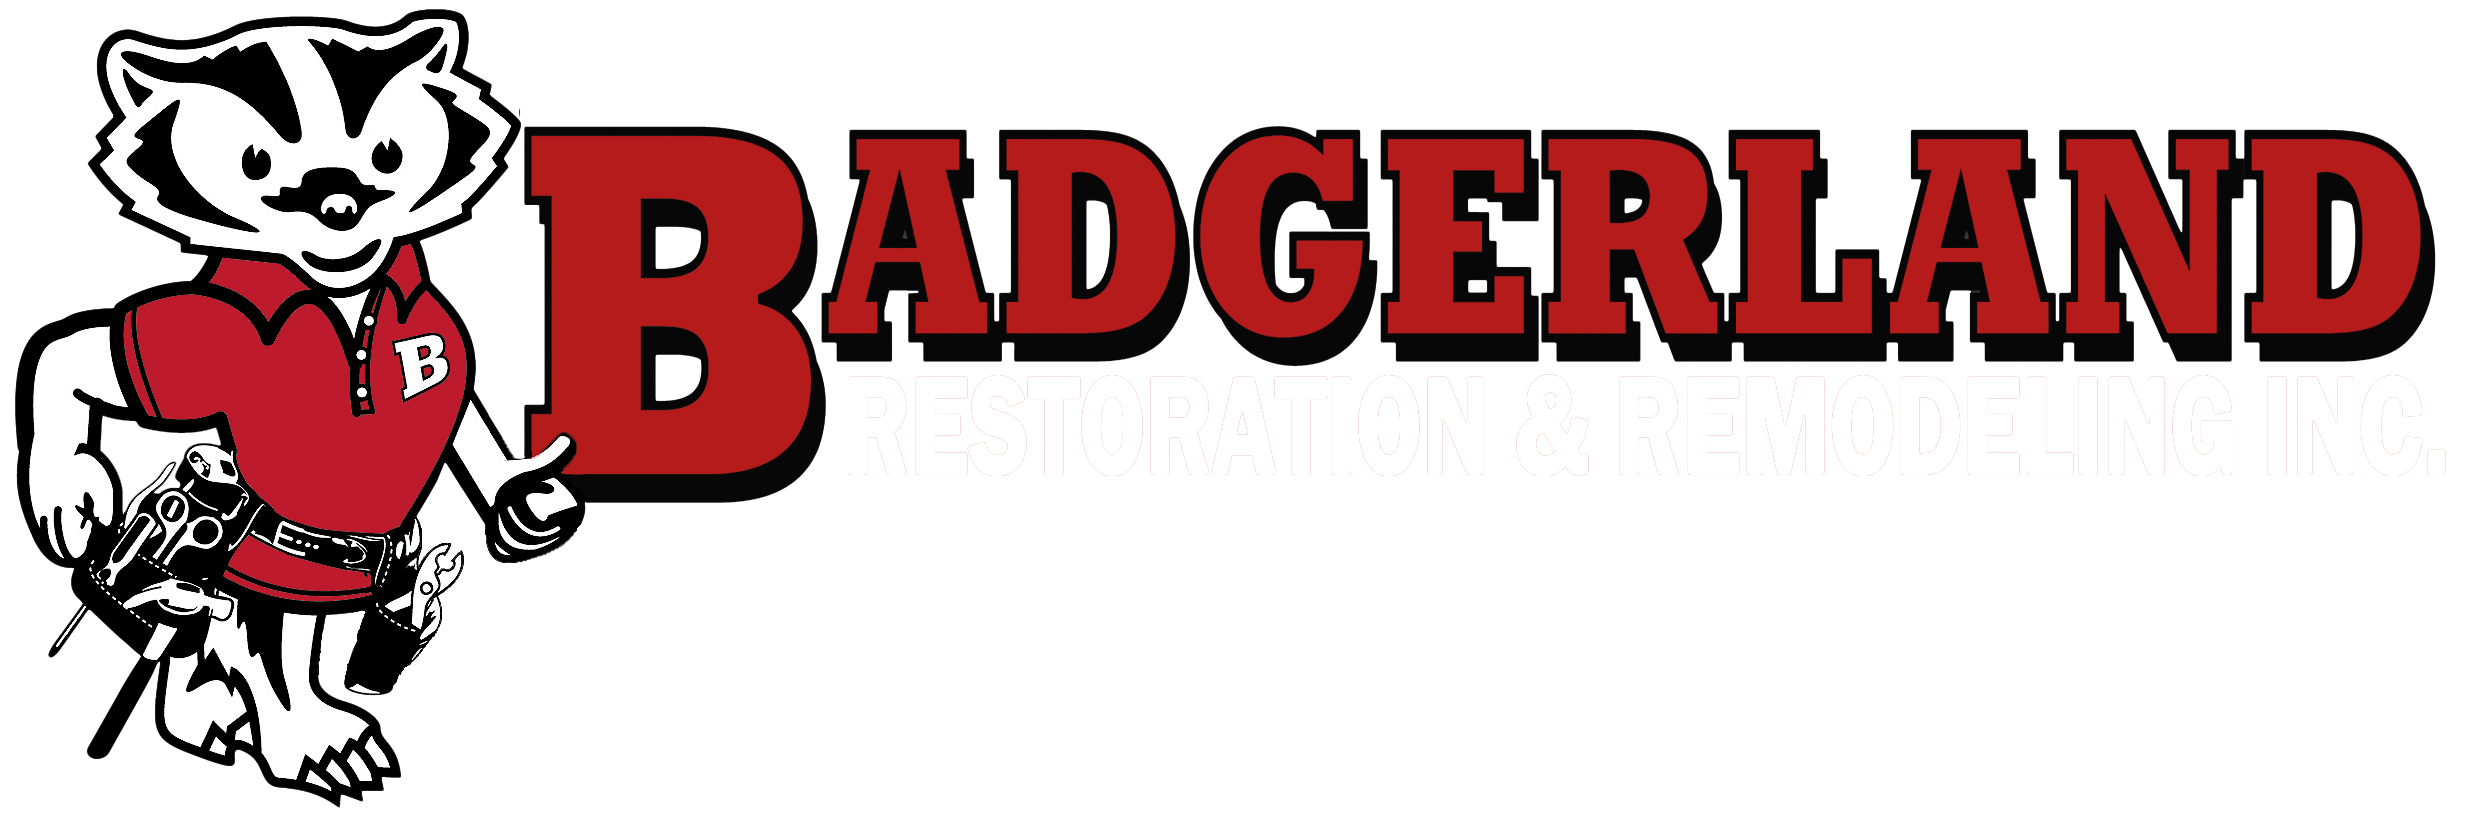 Badgerland Restoration And Remodeling